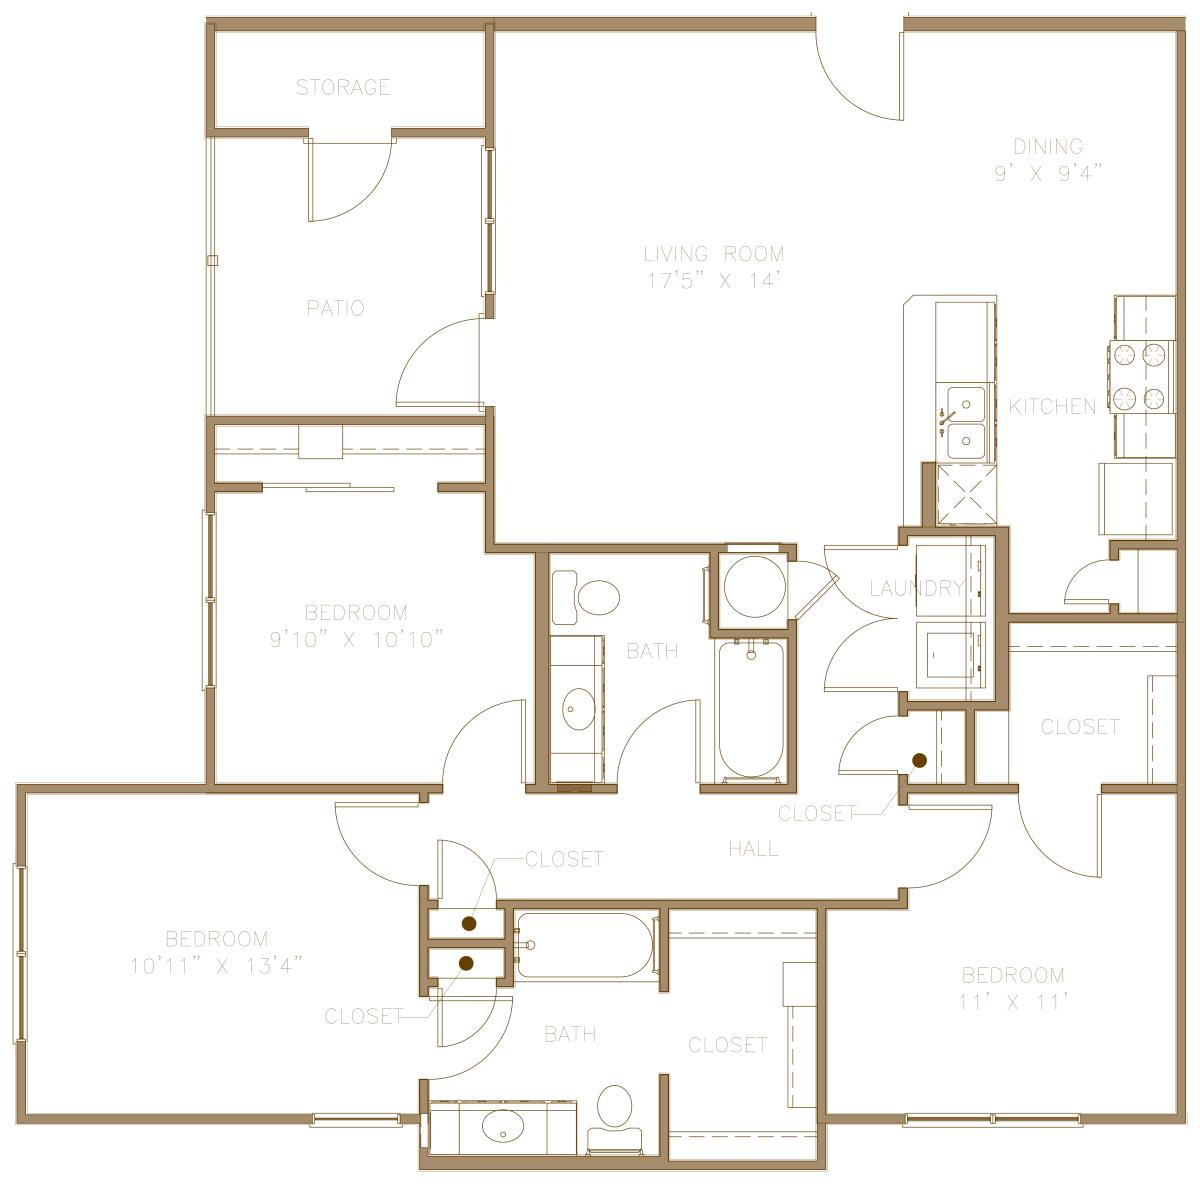 1,231 sq. ft. 60% floor plan